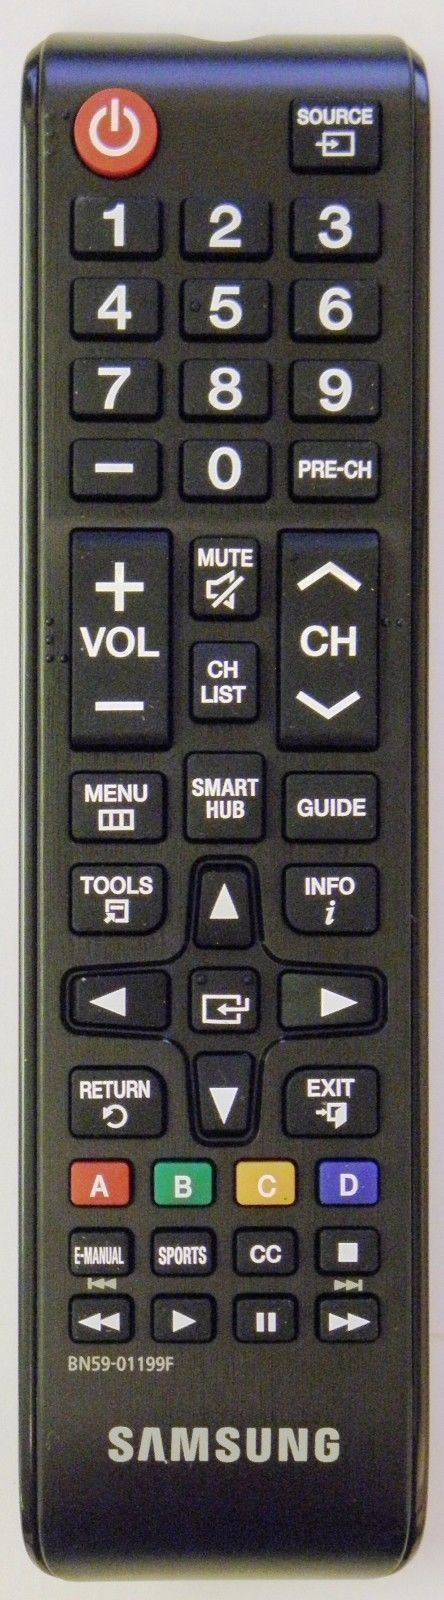 Genuine OEM Samsung Remote Control BN59-01199F  For UN40J5200 UN40J5200AF